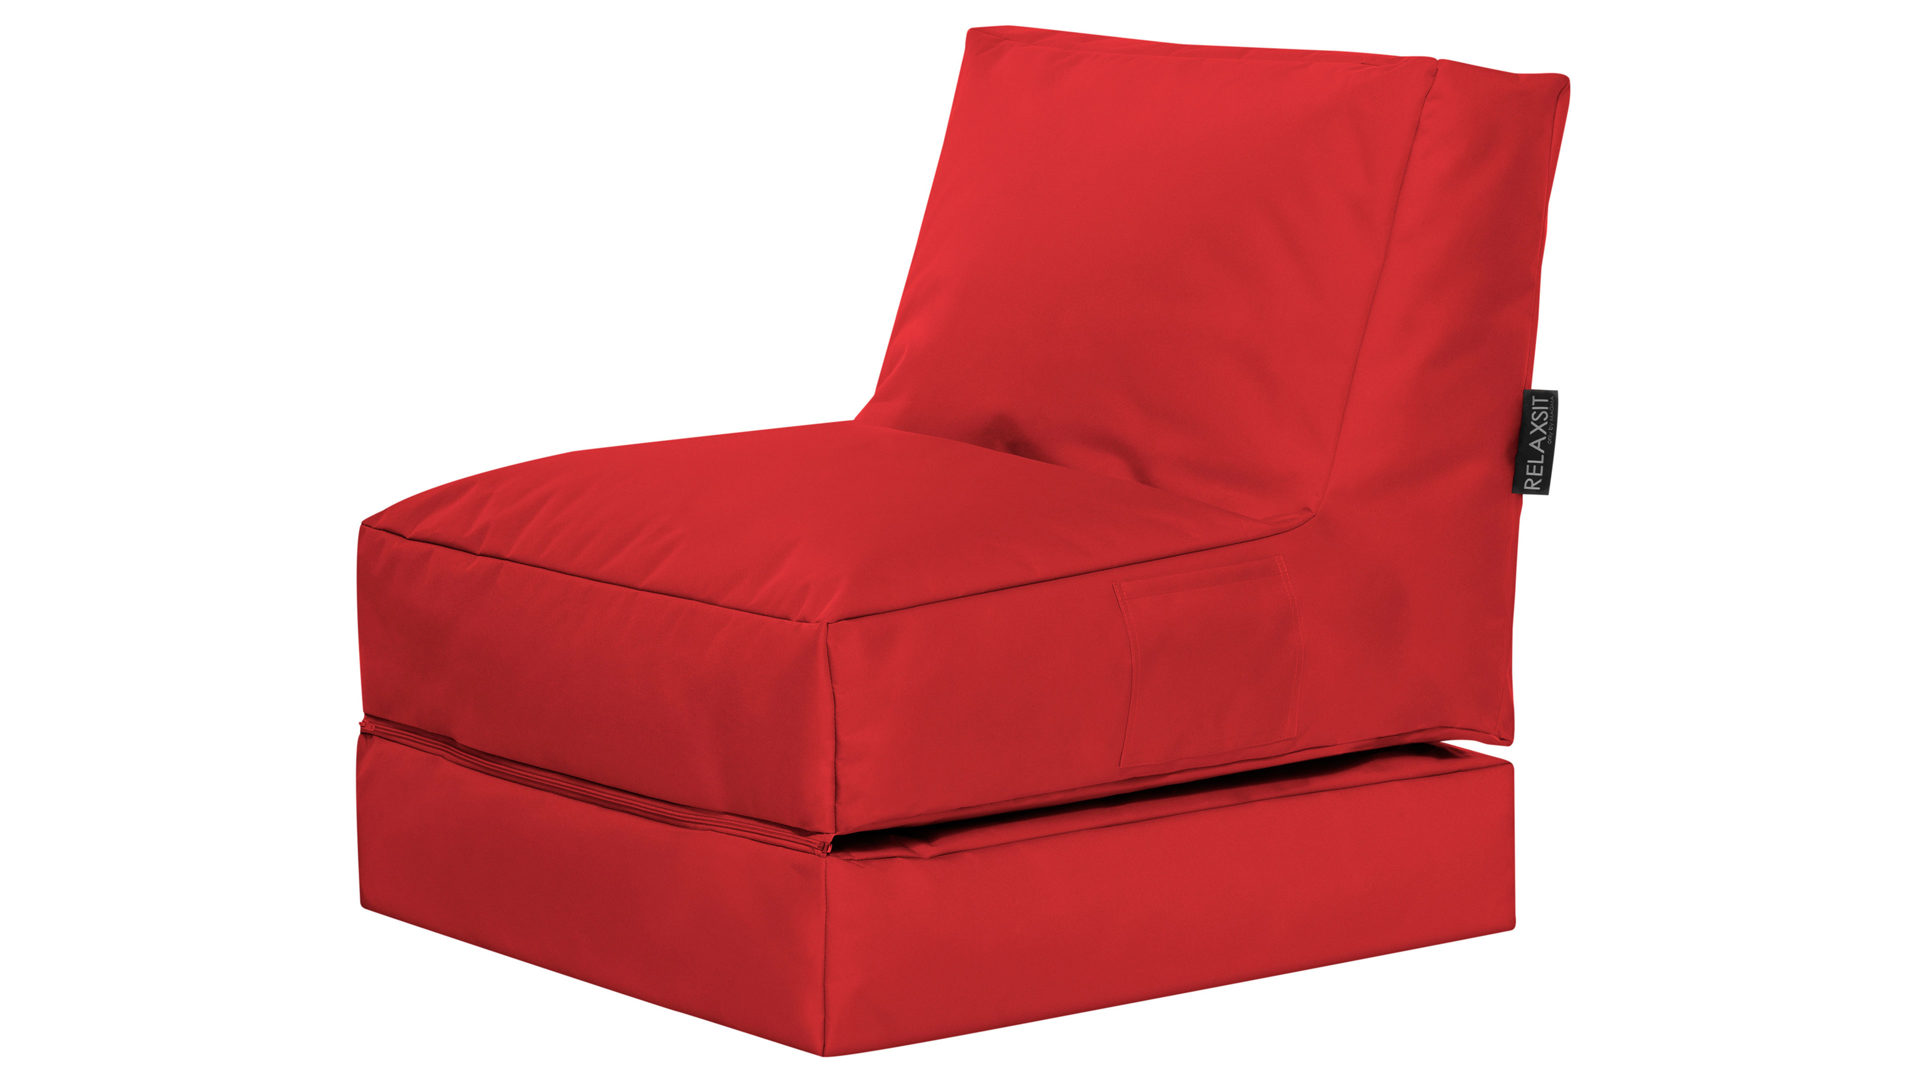 Sitzsack-Liege Magma sitting point aus Kunstfaser in Rot SITTING POINT Funktions-Sitzsack Twist Scuba roter Kunstfaserbezug - ca. 300 Liter